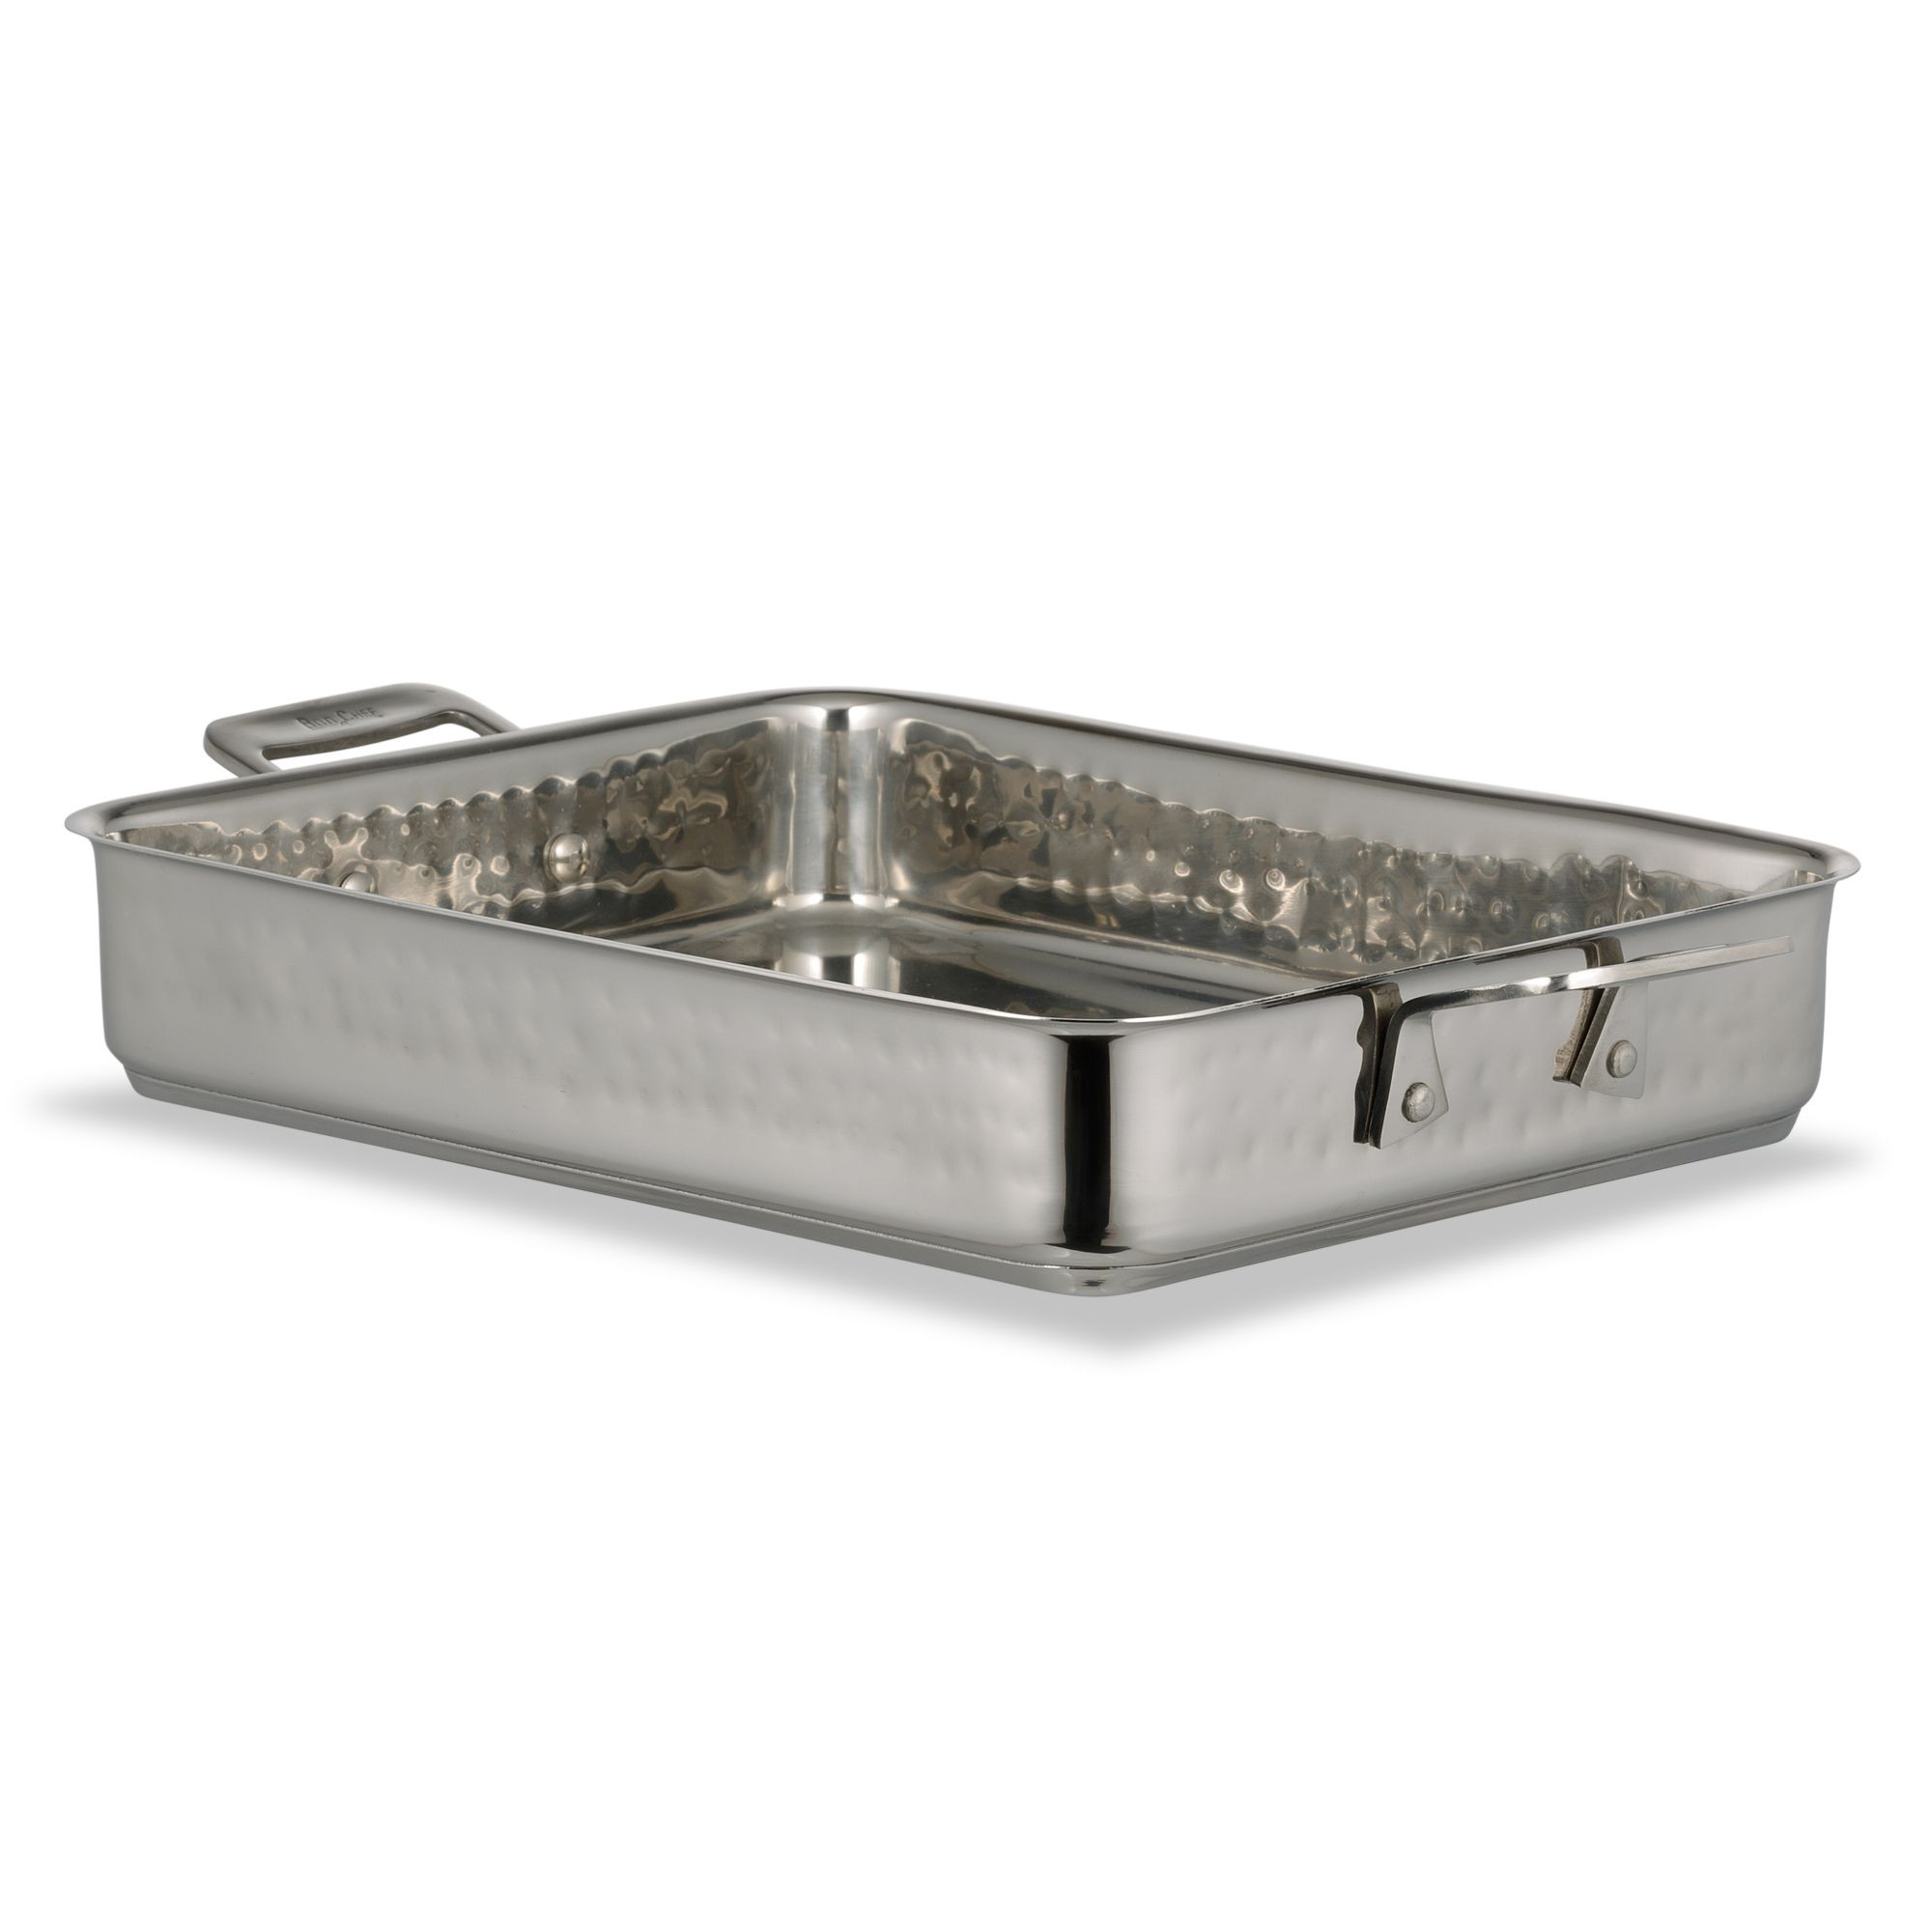 Bon Chef 60013CLDHF Cucina Stainless Steel Small Square Pan, Hammered Finish, 3 Qt.